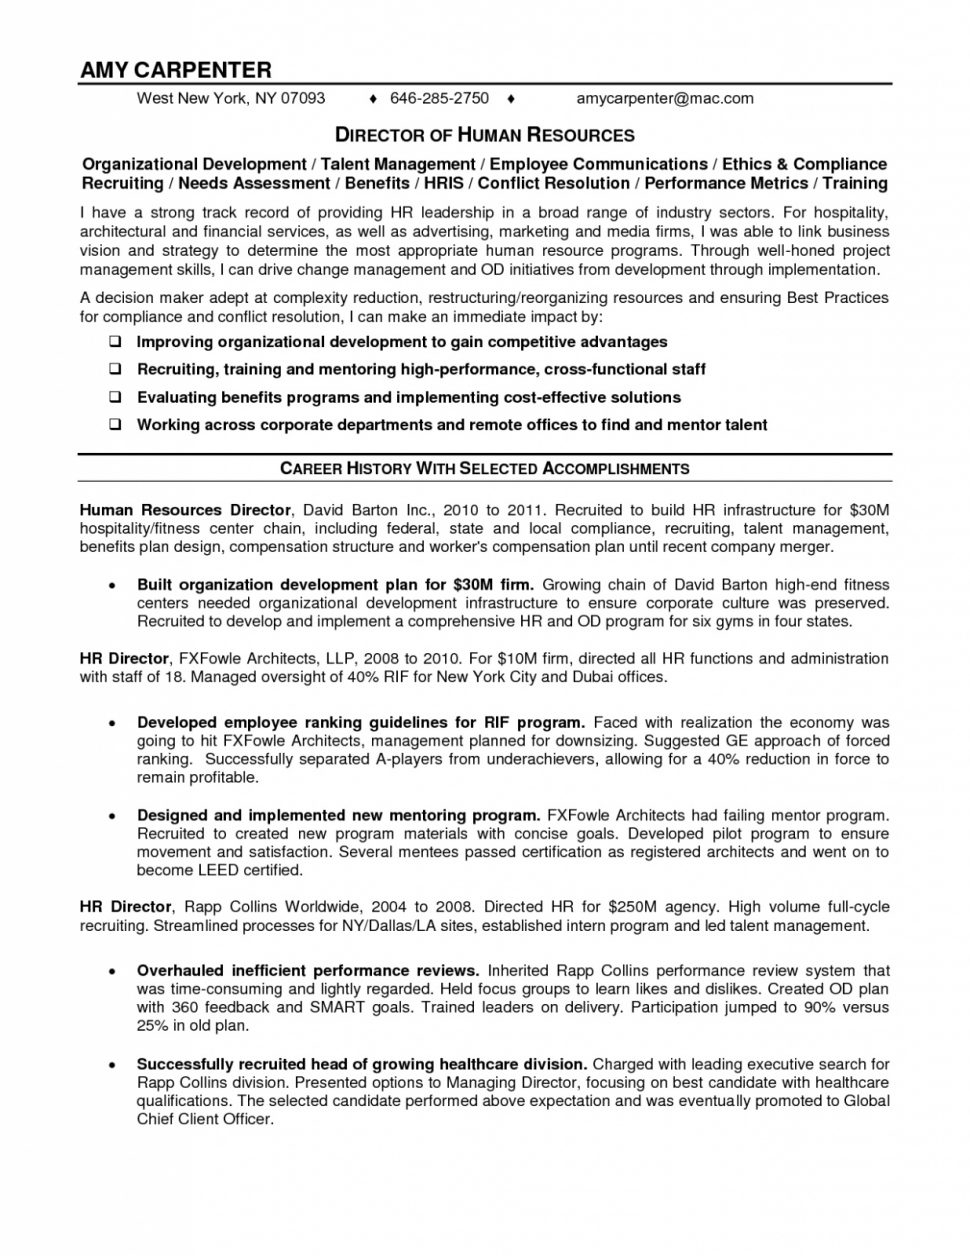 mccombs resume format damba template school of business senior analyst example student Resume Mccombs Resume Template